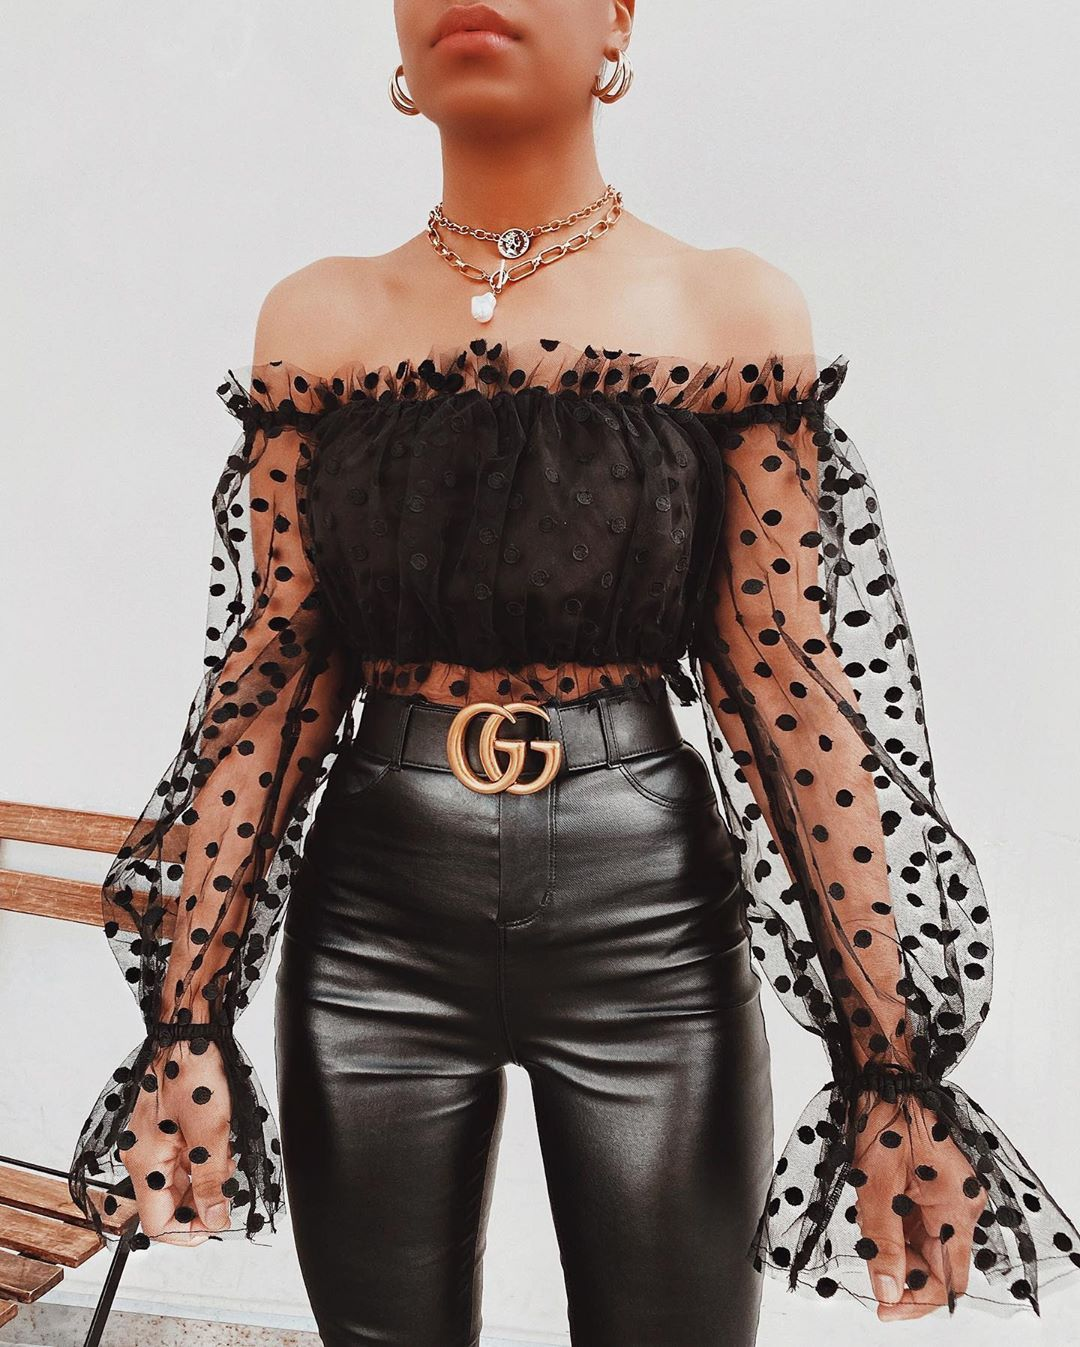 Baddie New Years Party Outfit In 2020 Fashion Fashion Teenage Girls Fashion Outfits